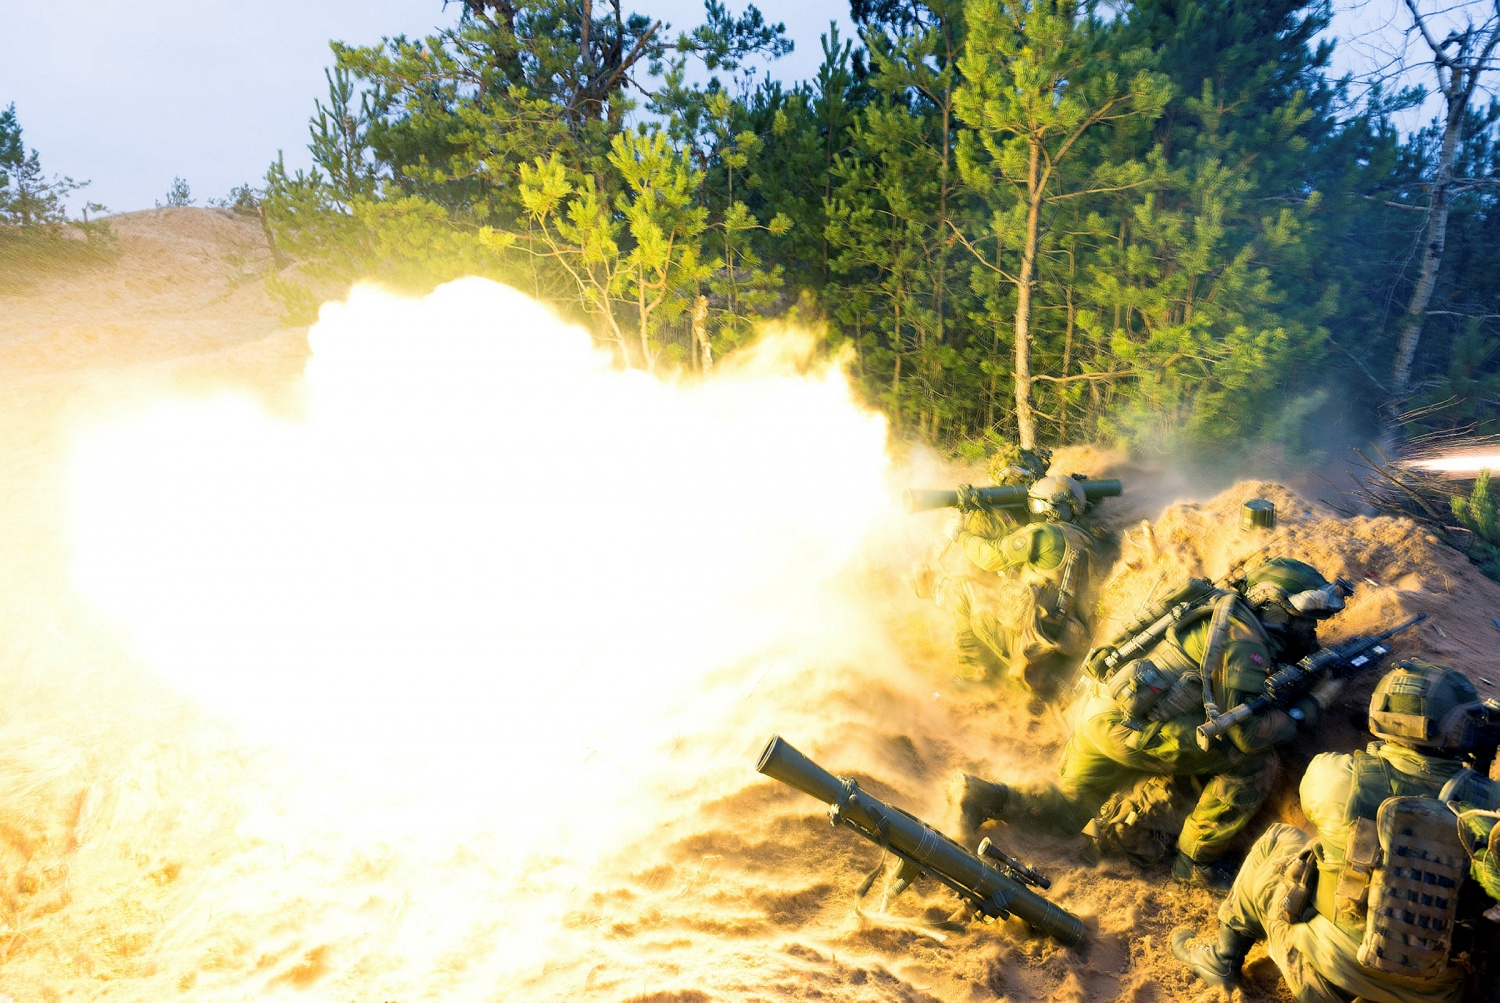 POTD: Live-fire with the 84mm M2 Carl Gustaf